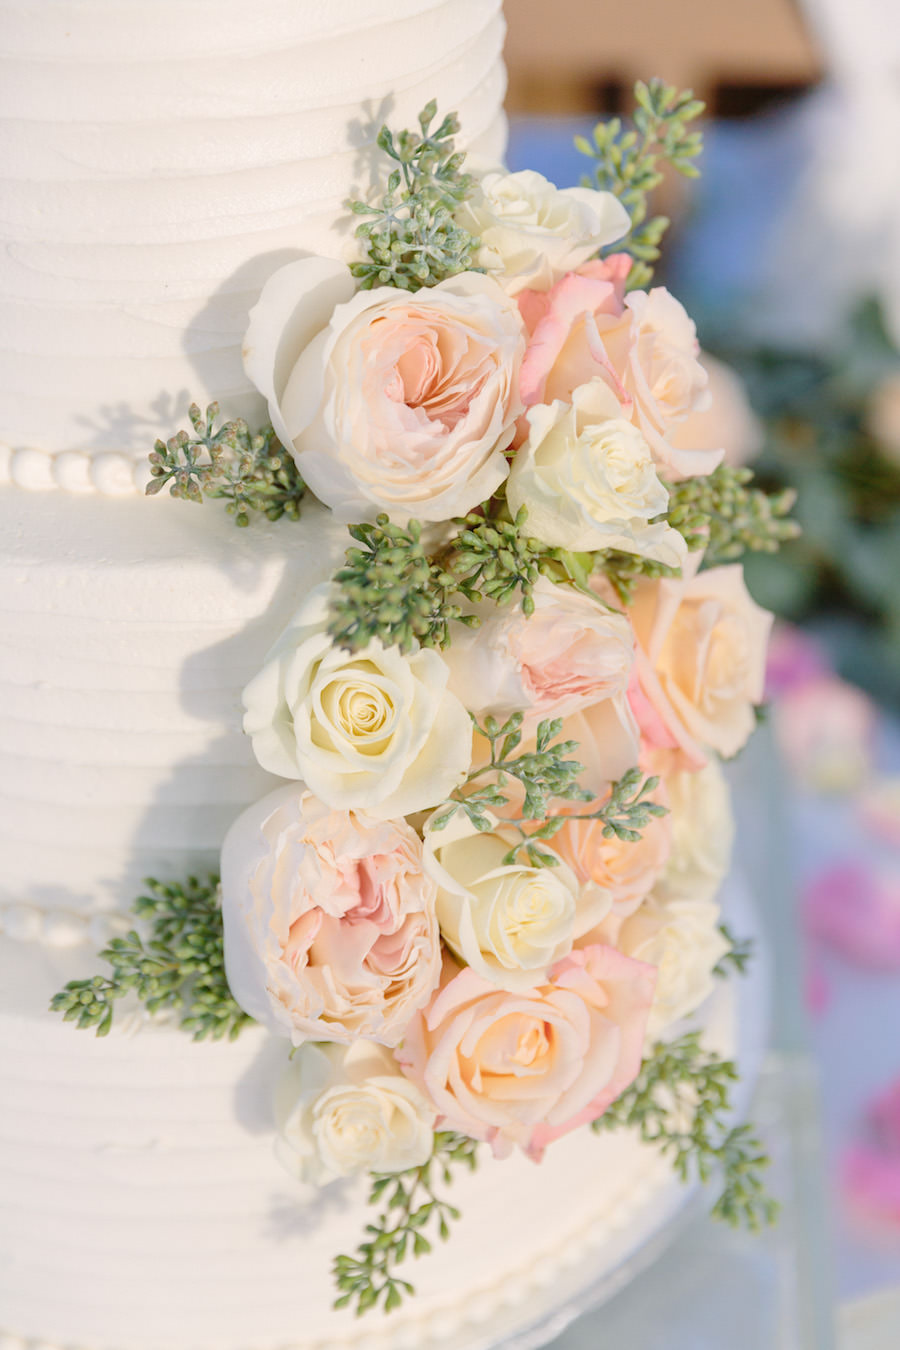 Three Tier White Wedding Cake with Real Blush and Ivory Ranunculus Flowers and Greenery